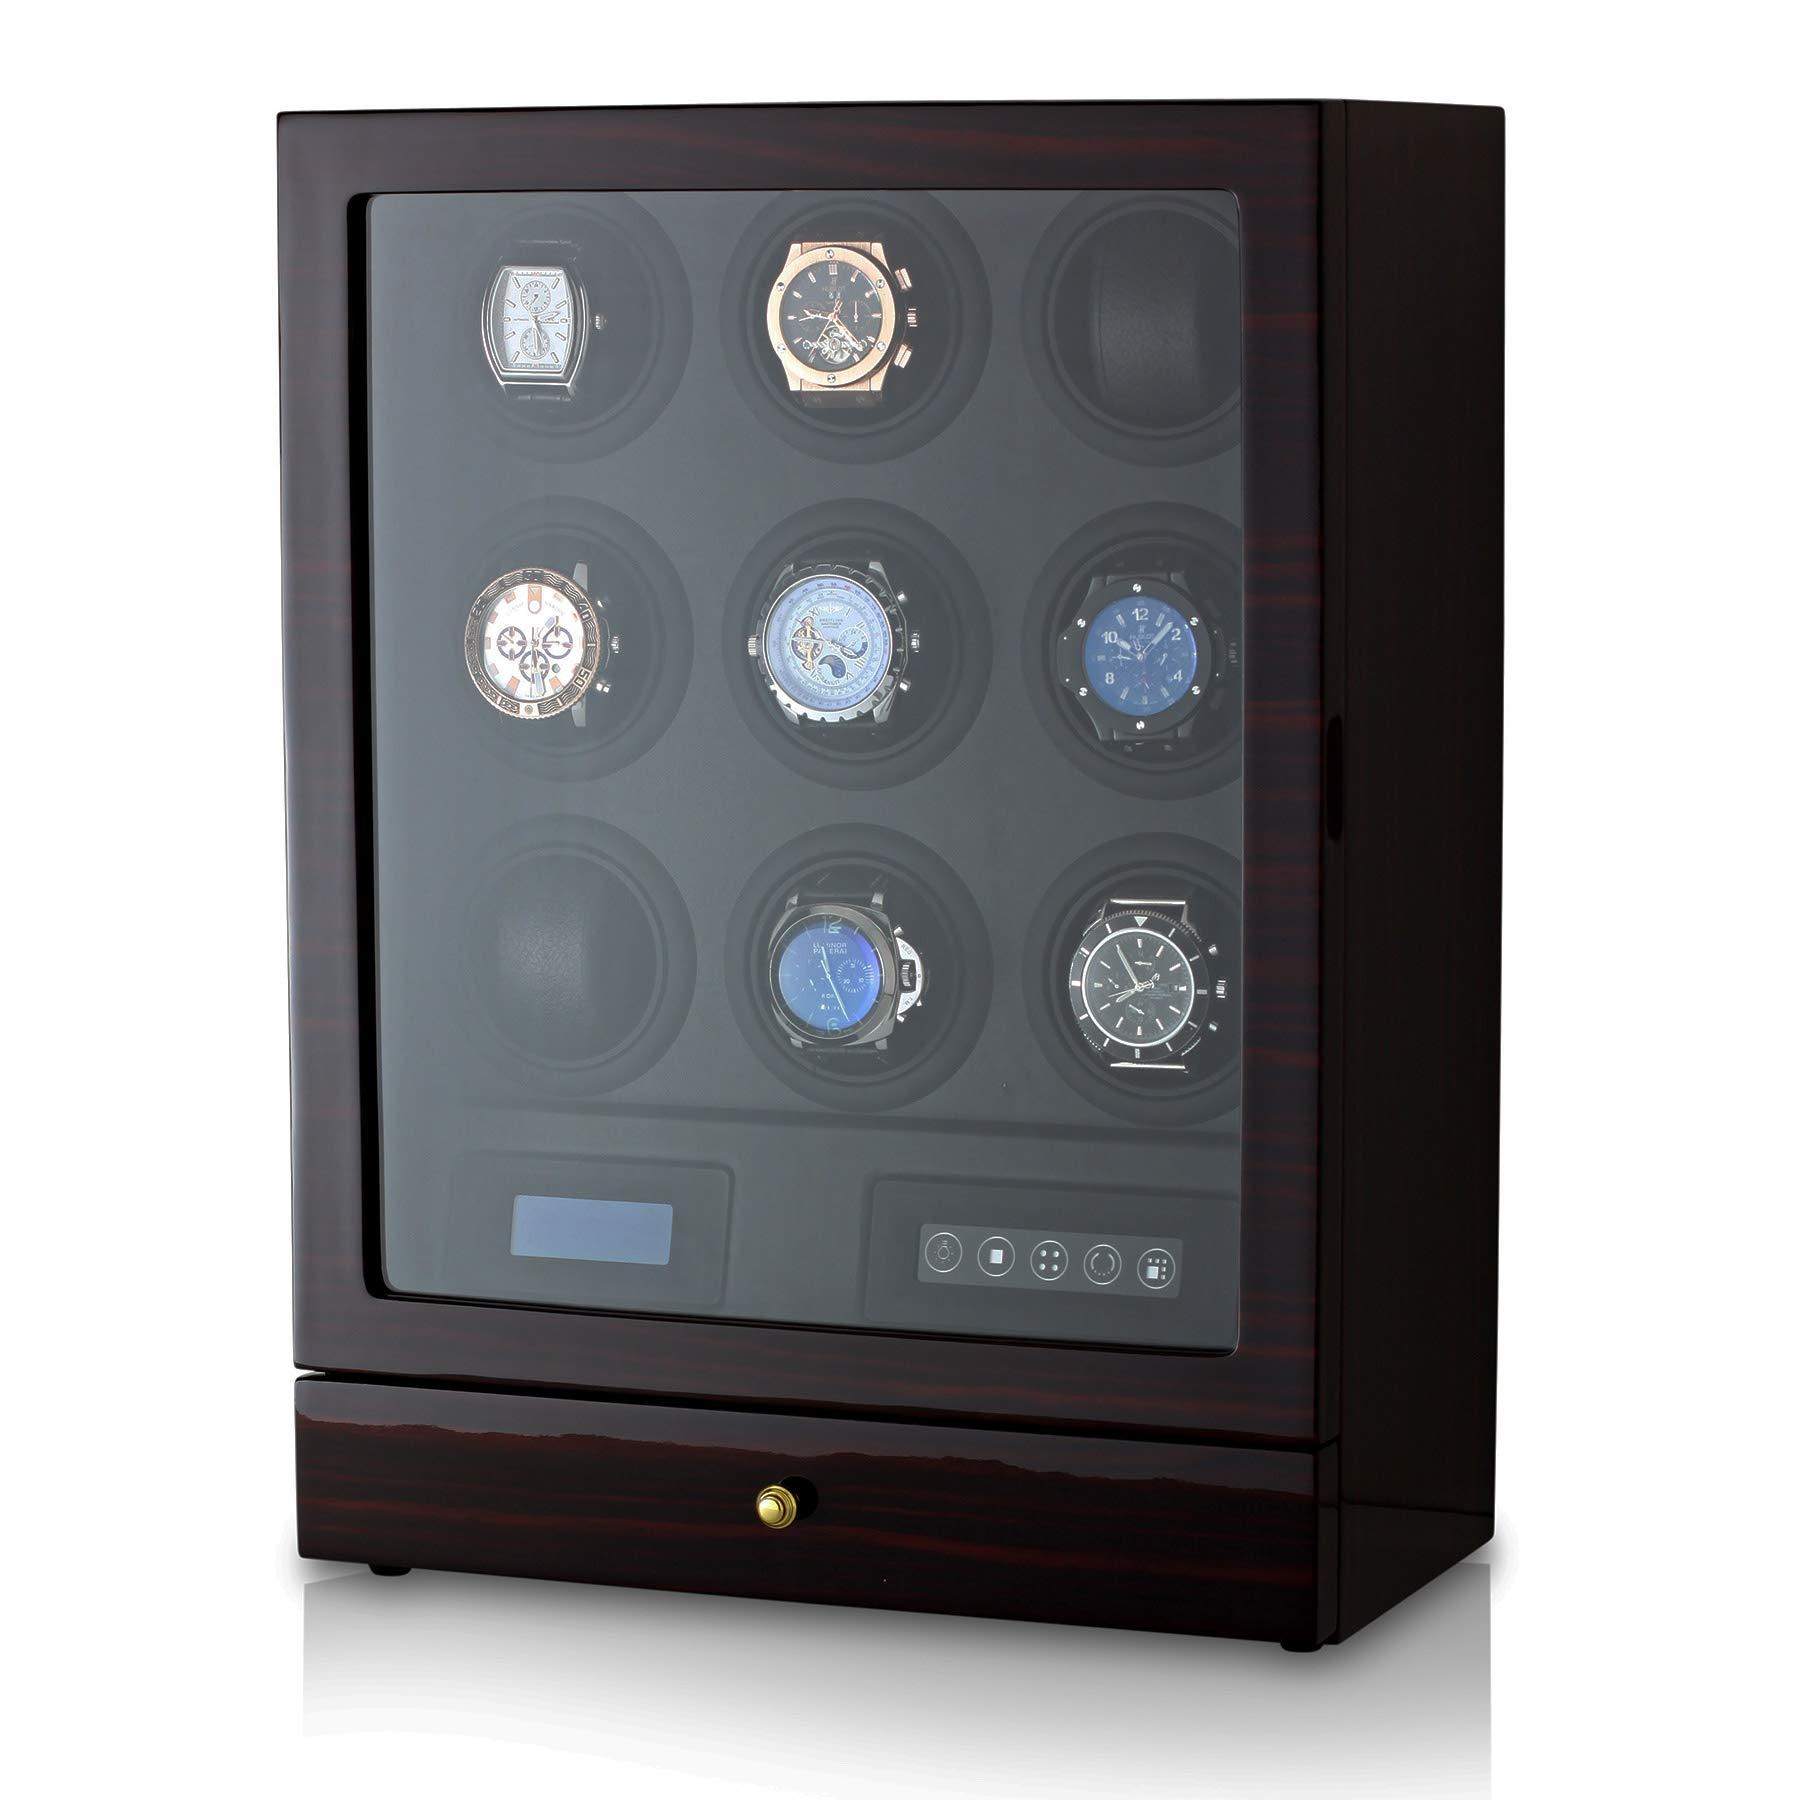 9 Watch Winder with LED Backlight, Remote Control, LCD Display and 2 Watches Storage Compartment (Ebony + Black)